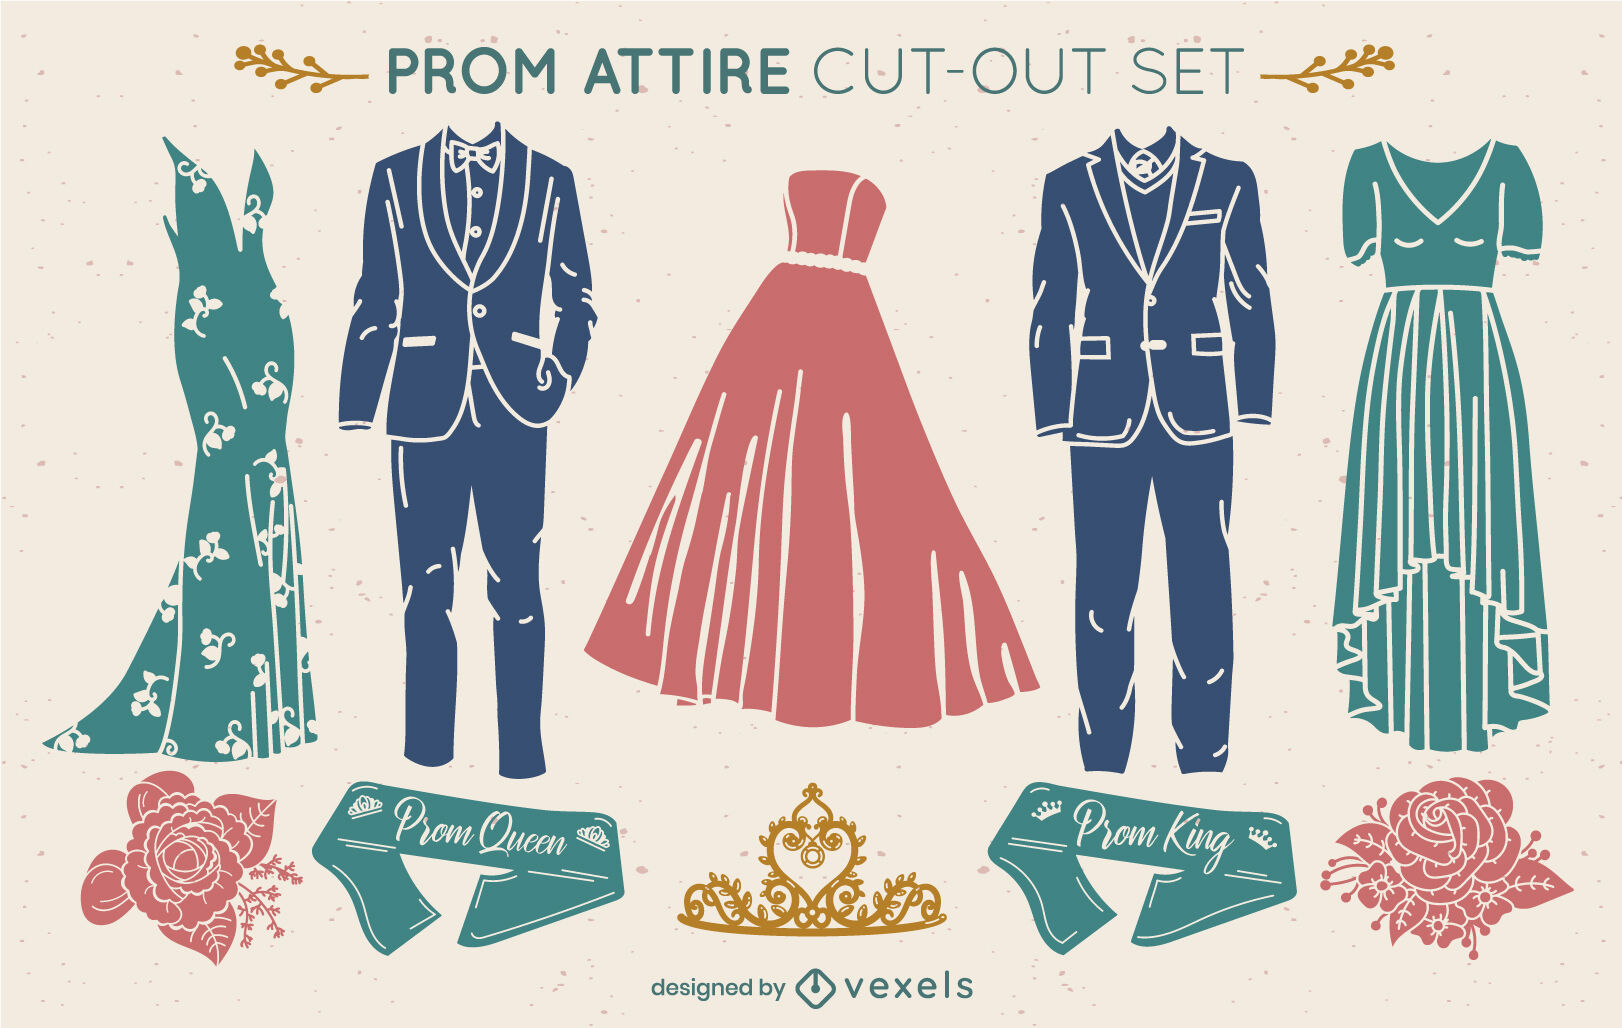 Prom party fancy clothing cut out set